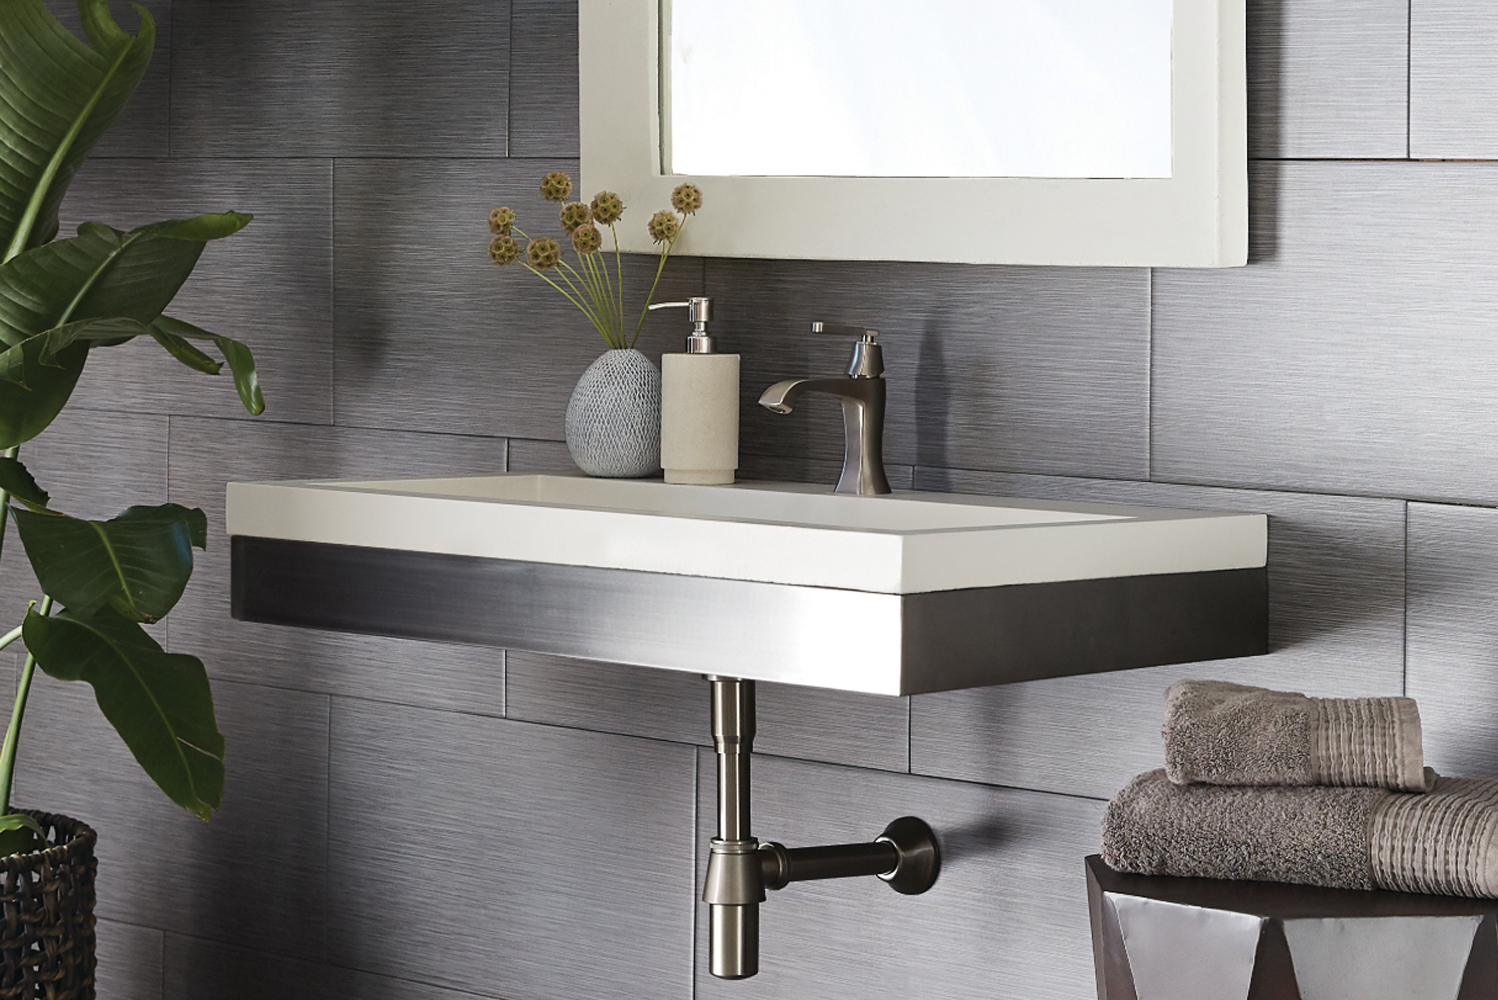 """Zaca is handcrafted from 304 grade stainless steel and is available in 36"""" and 48"""" sizes, making it suitable for universally designed bathrooms in residential, contract and hospitality spaces."""